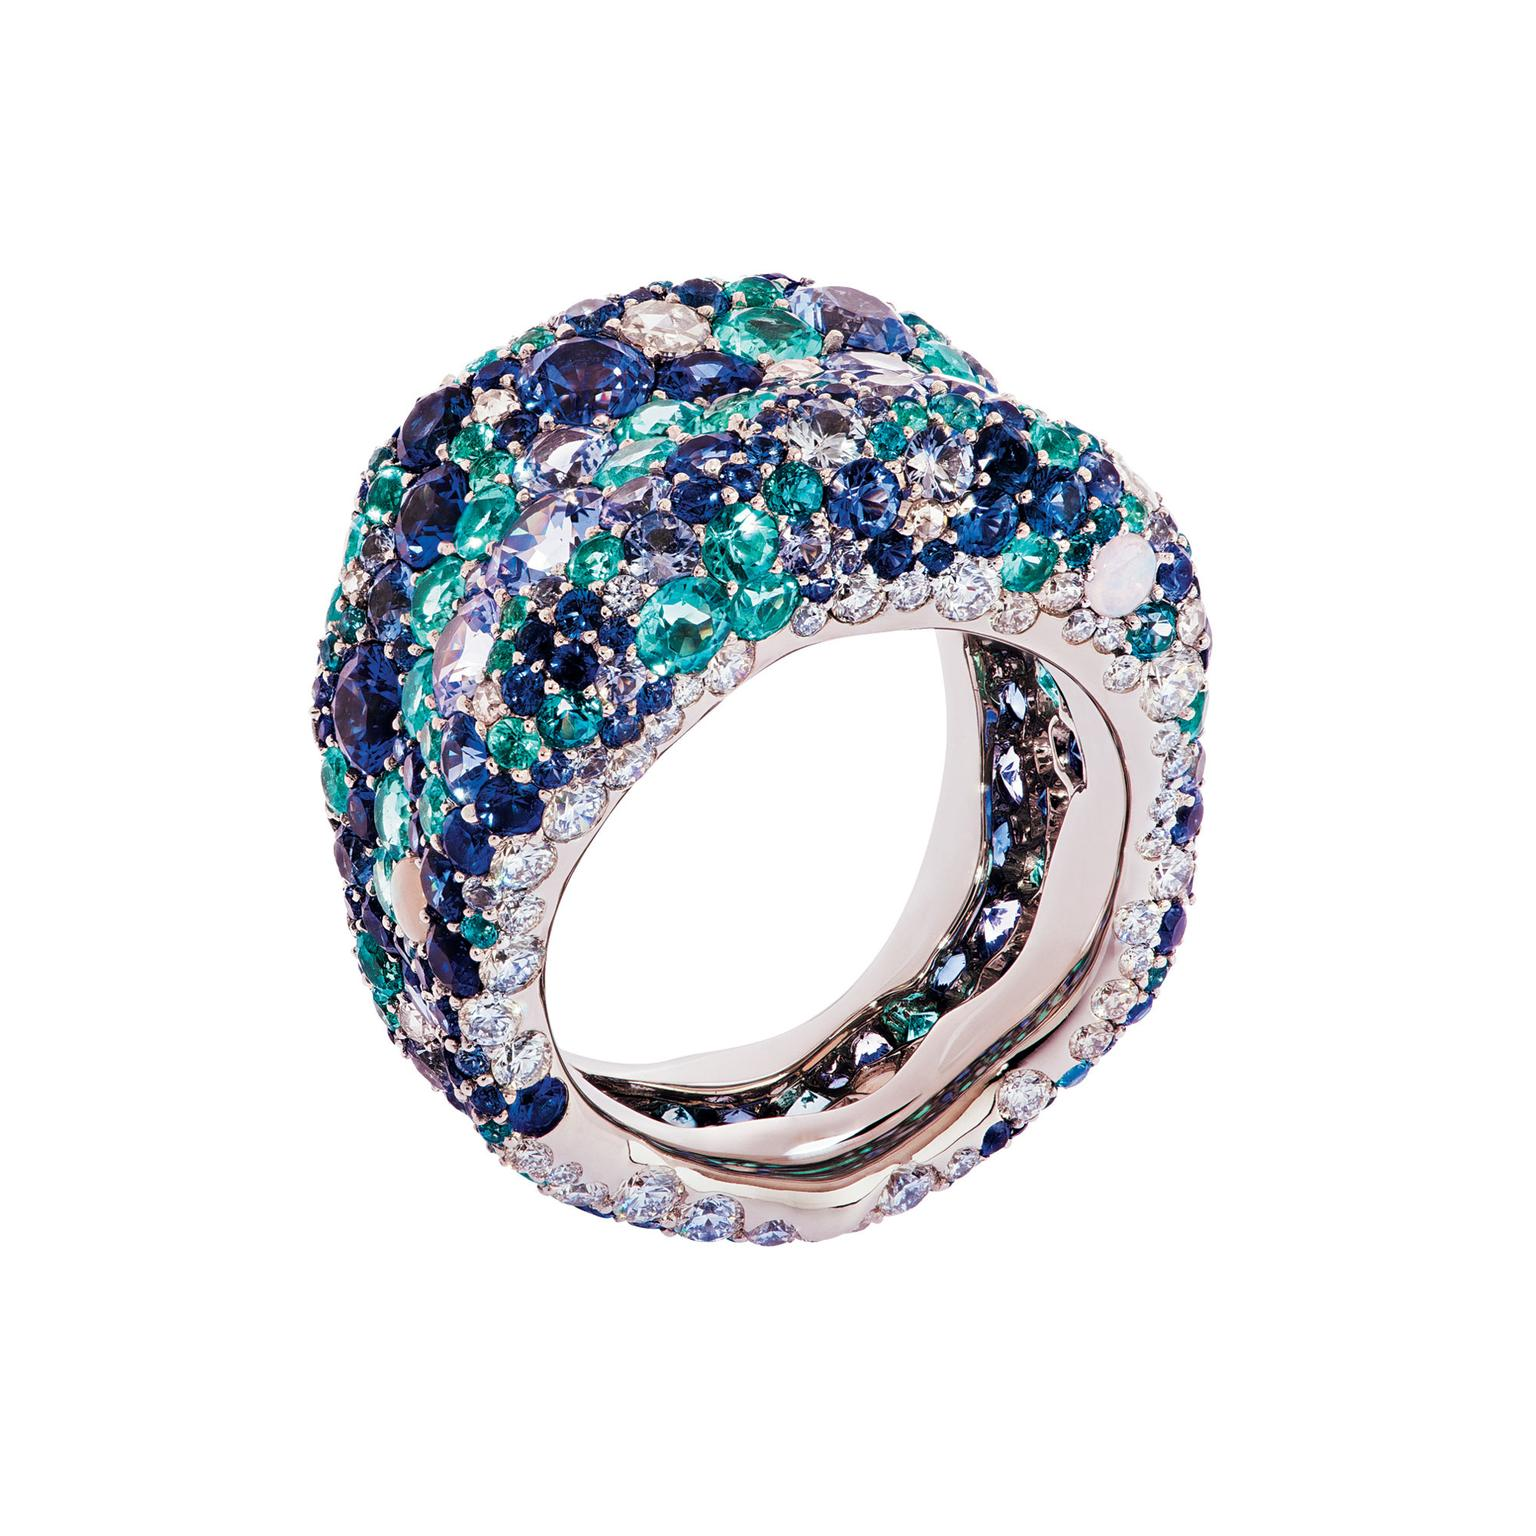 Fabergé Emotion Blue ring